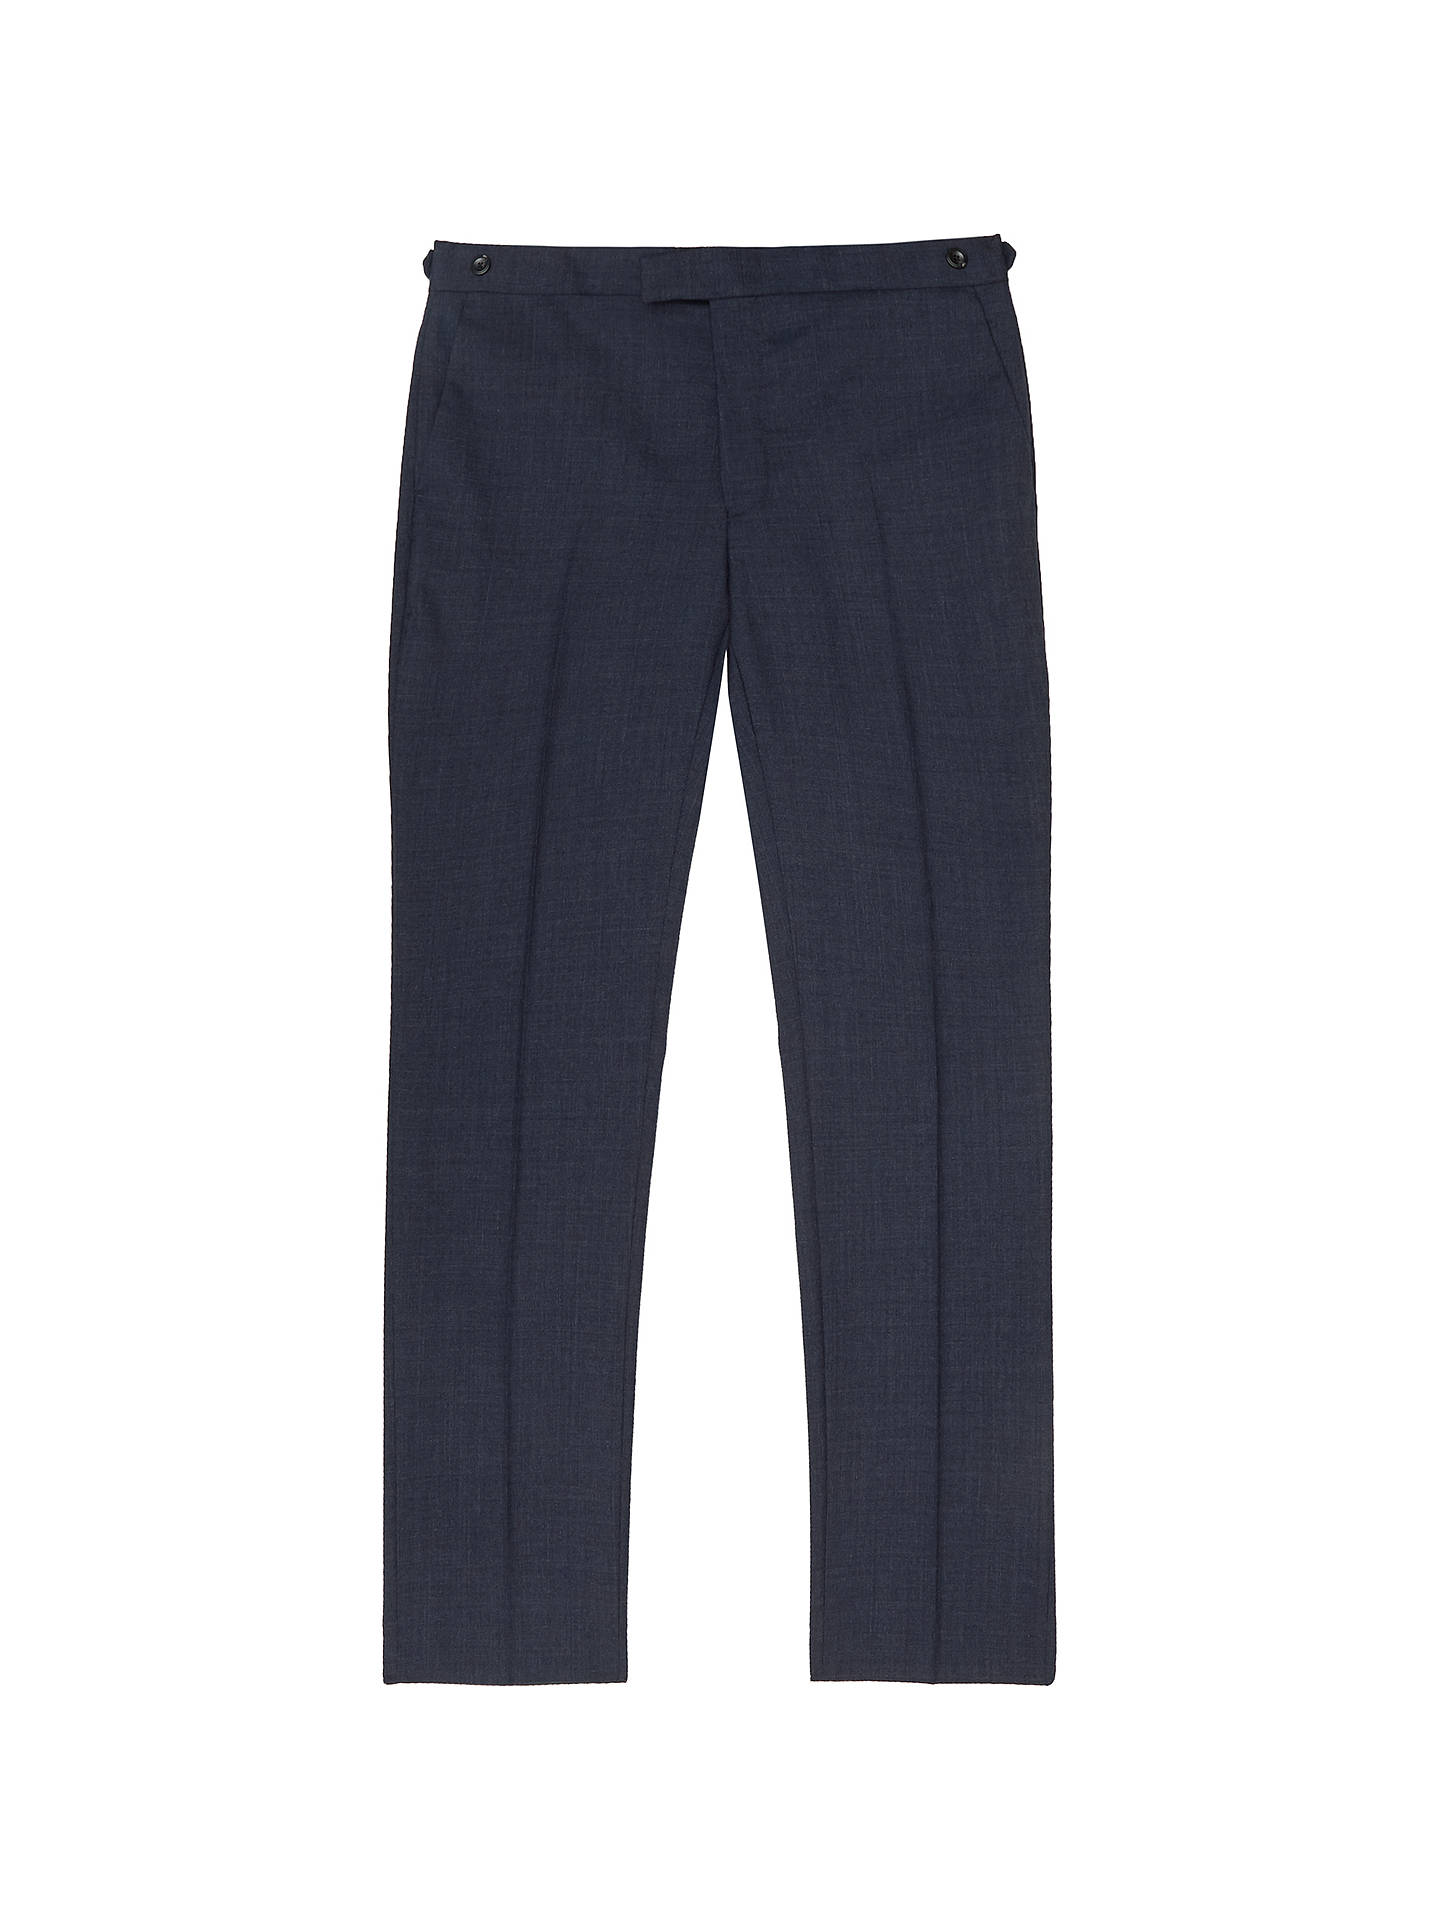 Buy Reiss Terrance Wool Slim Fit Suit Trousers, Airforce Blue, 30R Online at johnlewis.com